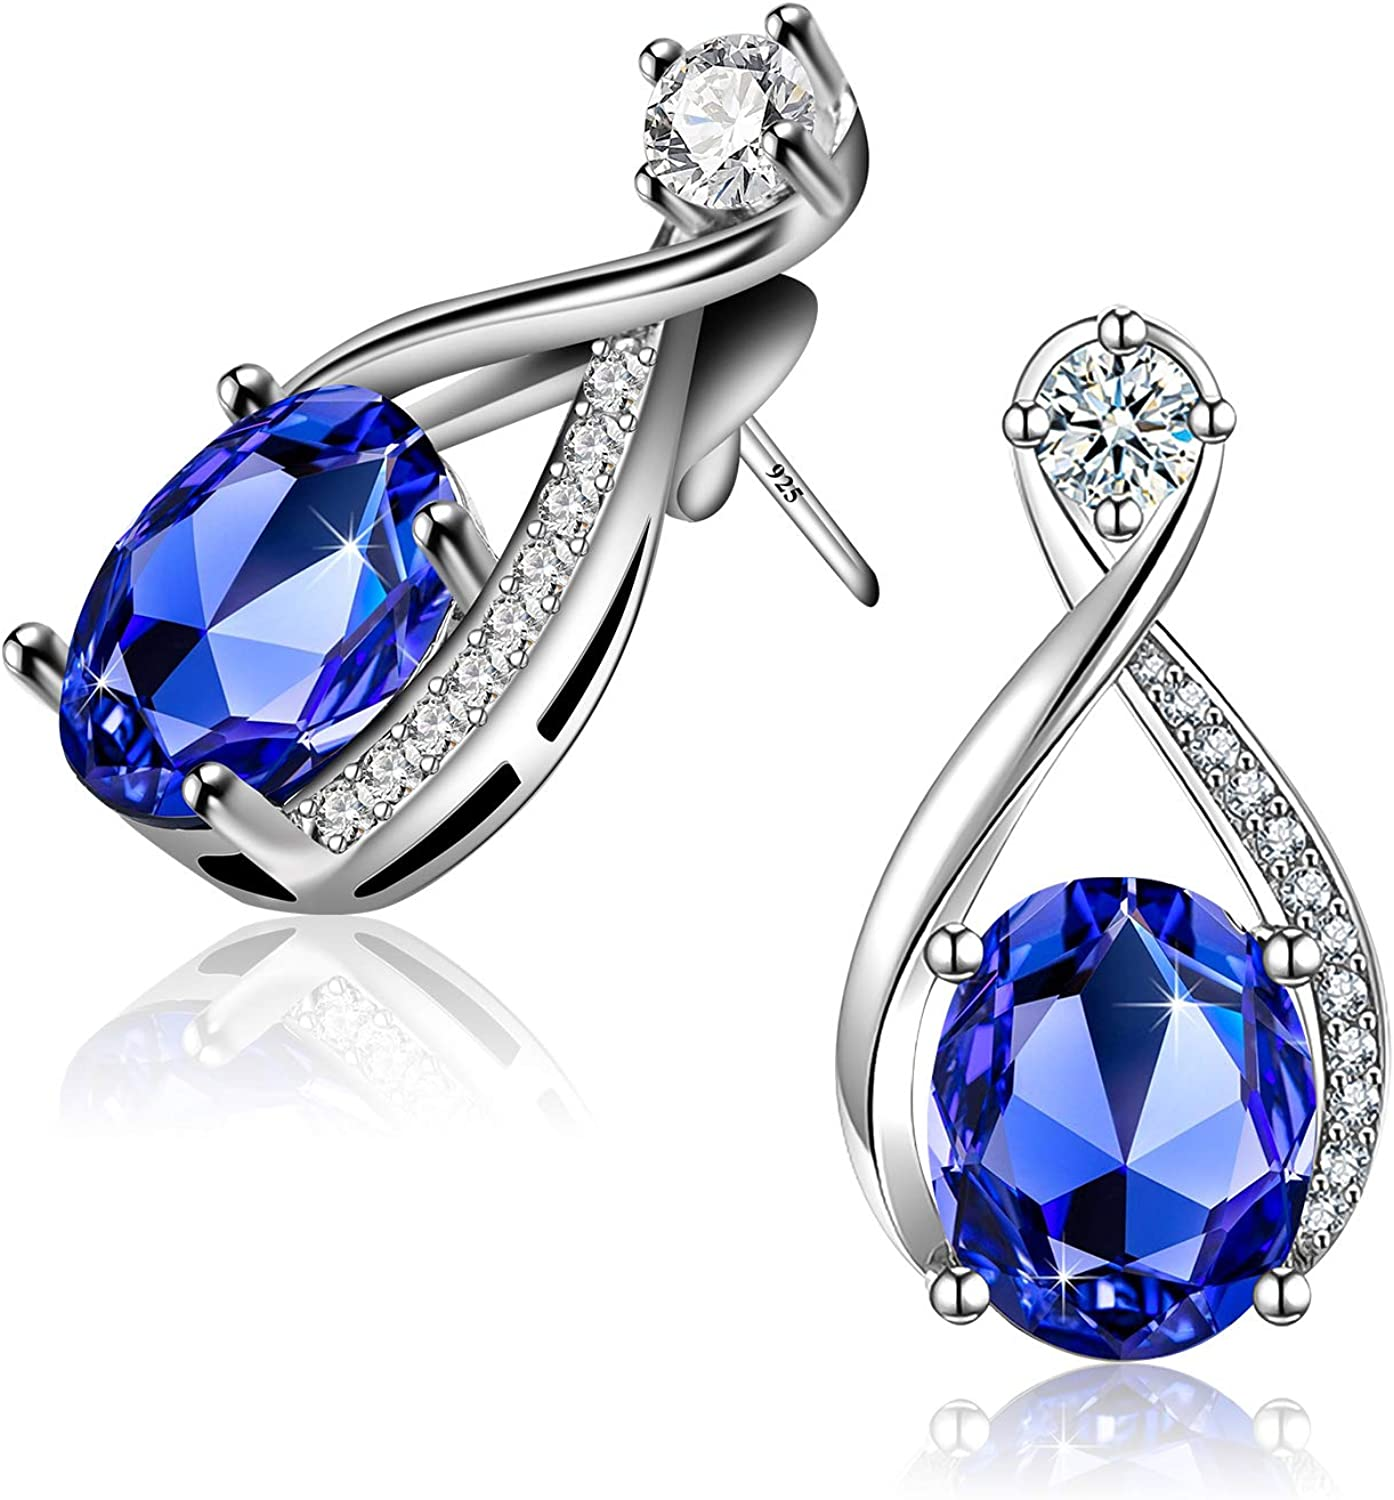 18K White Gold Plated Snowflake Leverback Earrings with Cubic Zirconia for Women Girls CZ Jewelry Fashion Drop Earrings